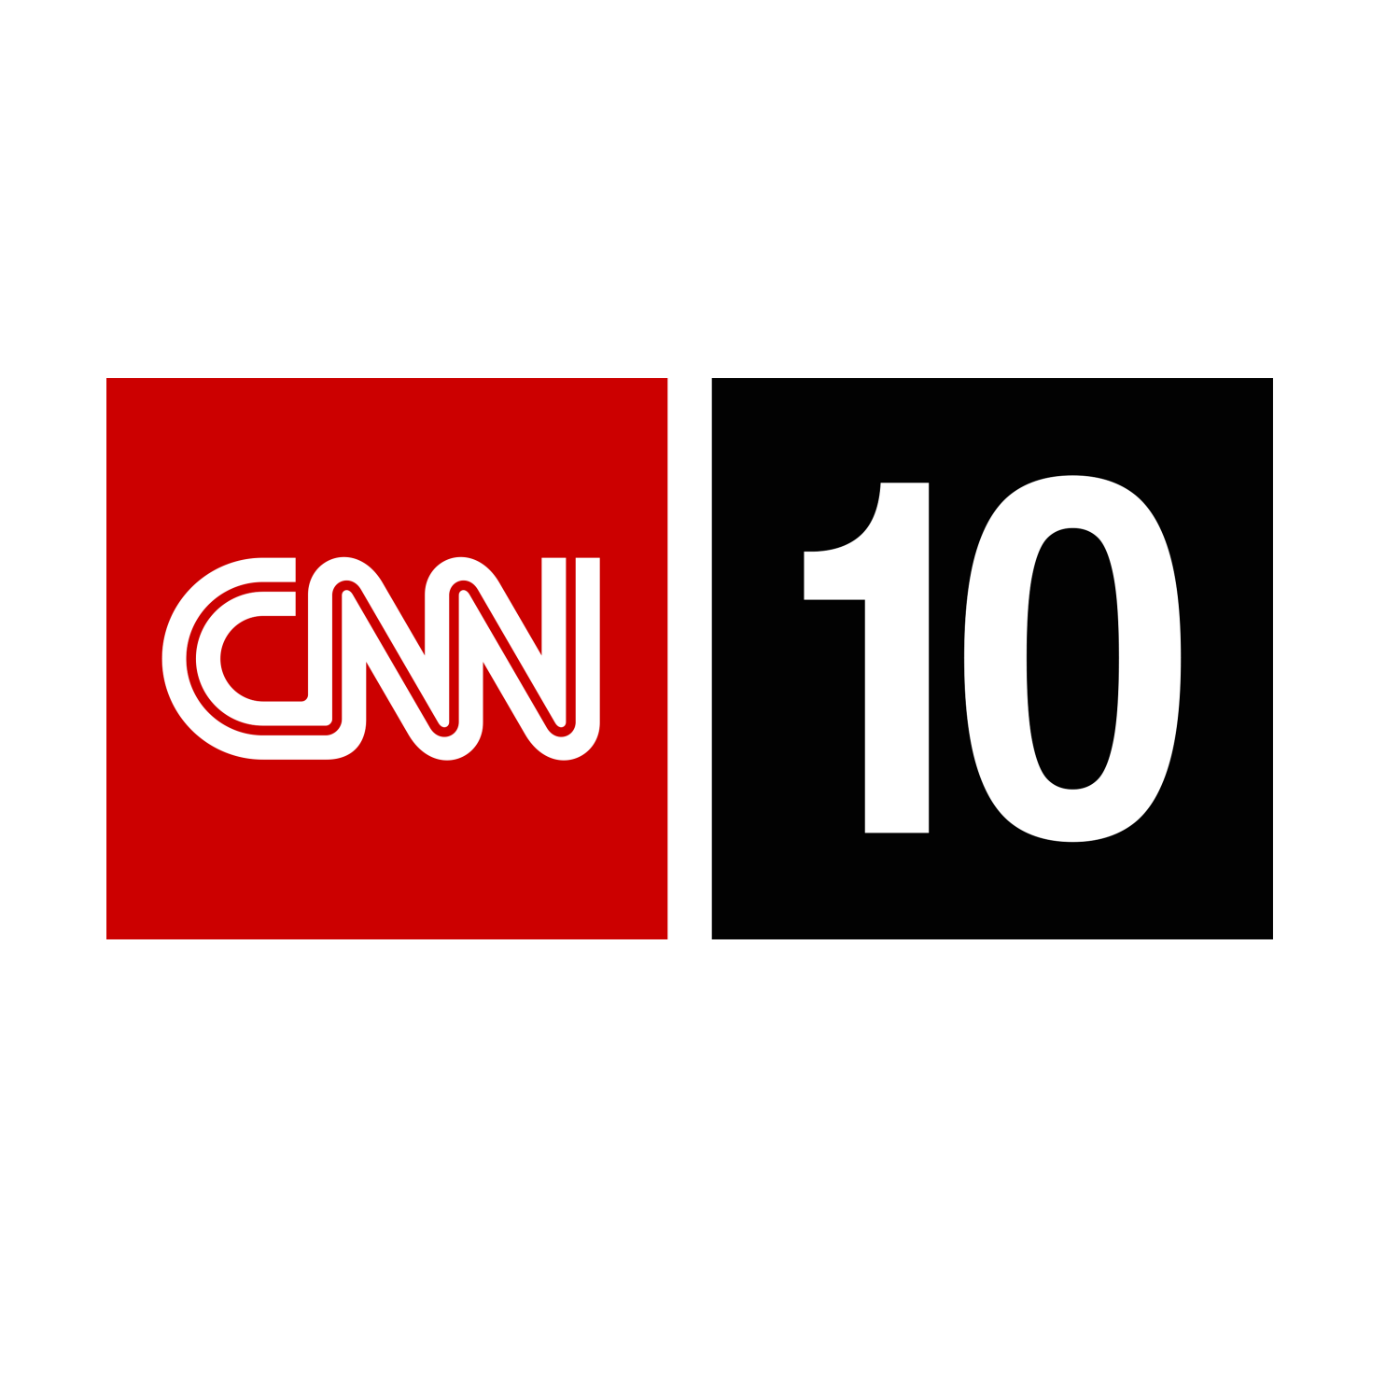 CNN Student News - January 25, 2013